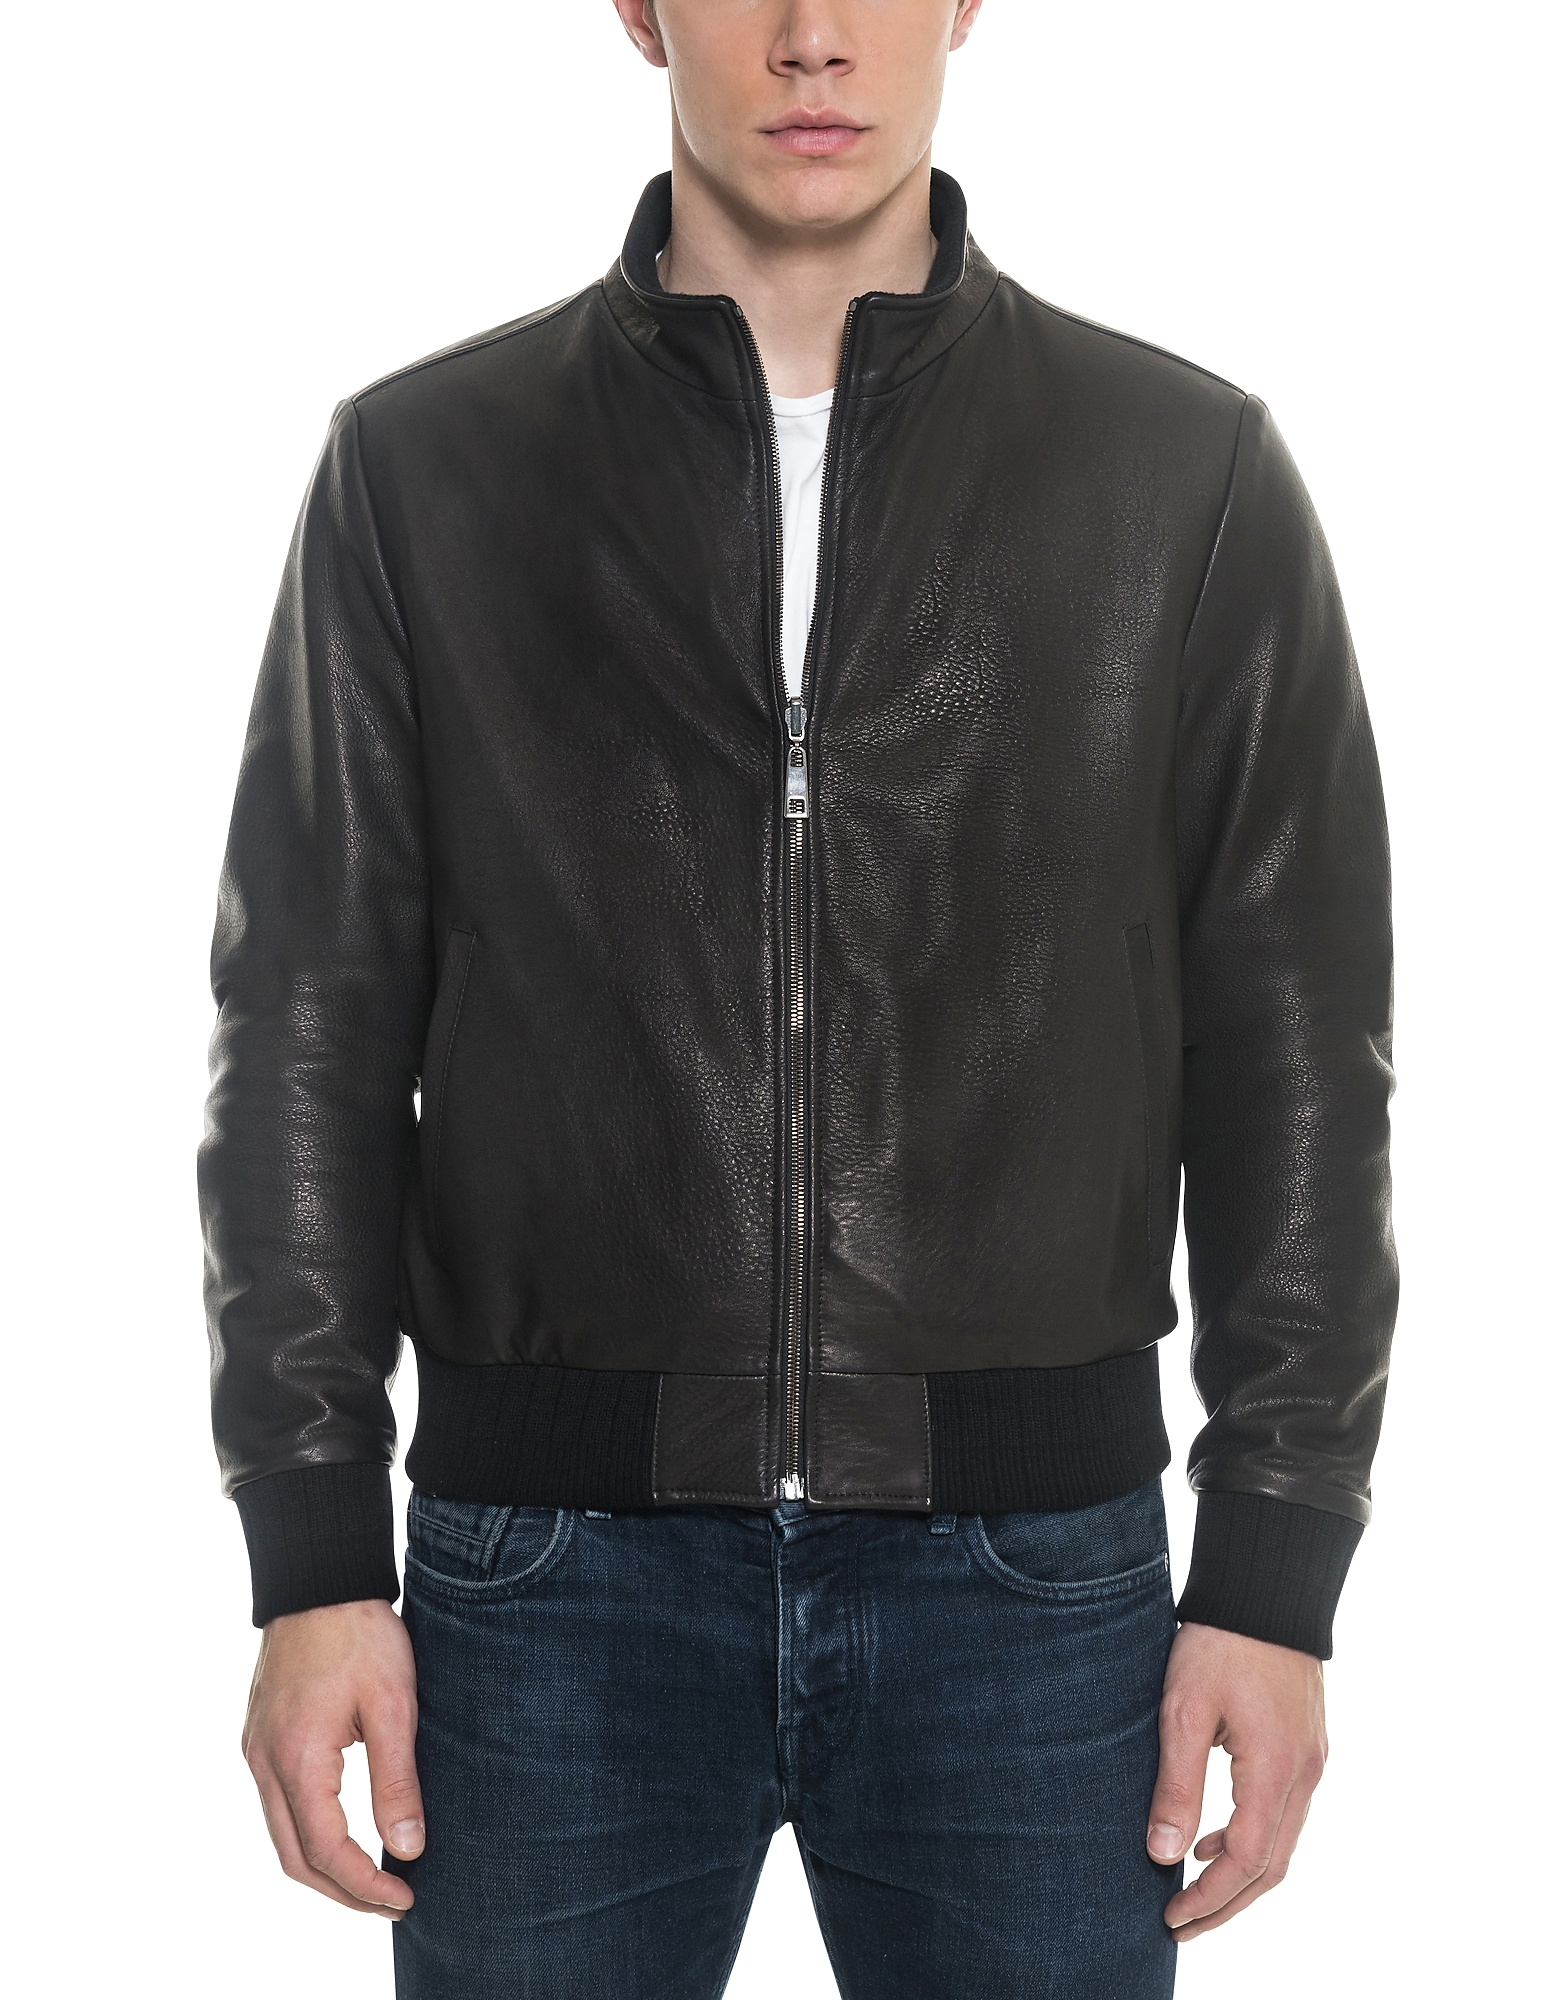 Image of Forzieri Designer Leather Jackets, Black Leather and Nylon Men's Reversible Jacket